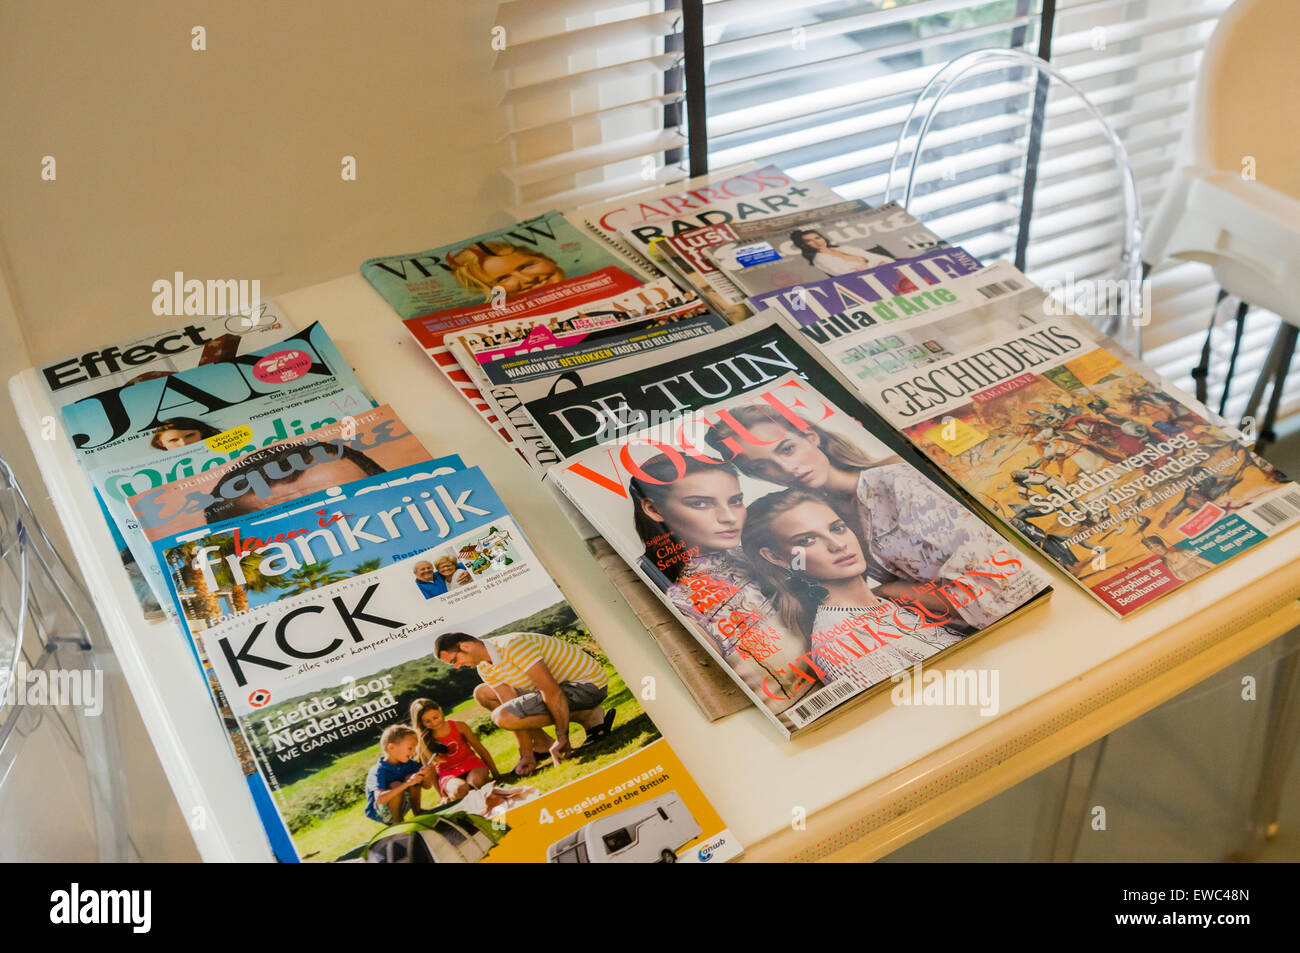 Dutch magazines on a table in a hotel. - Stock Image